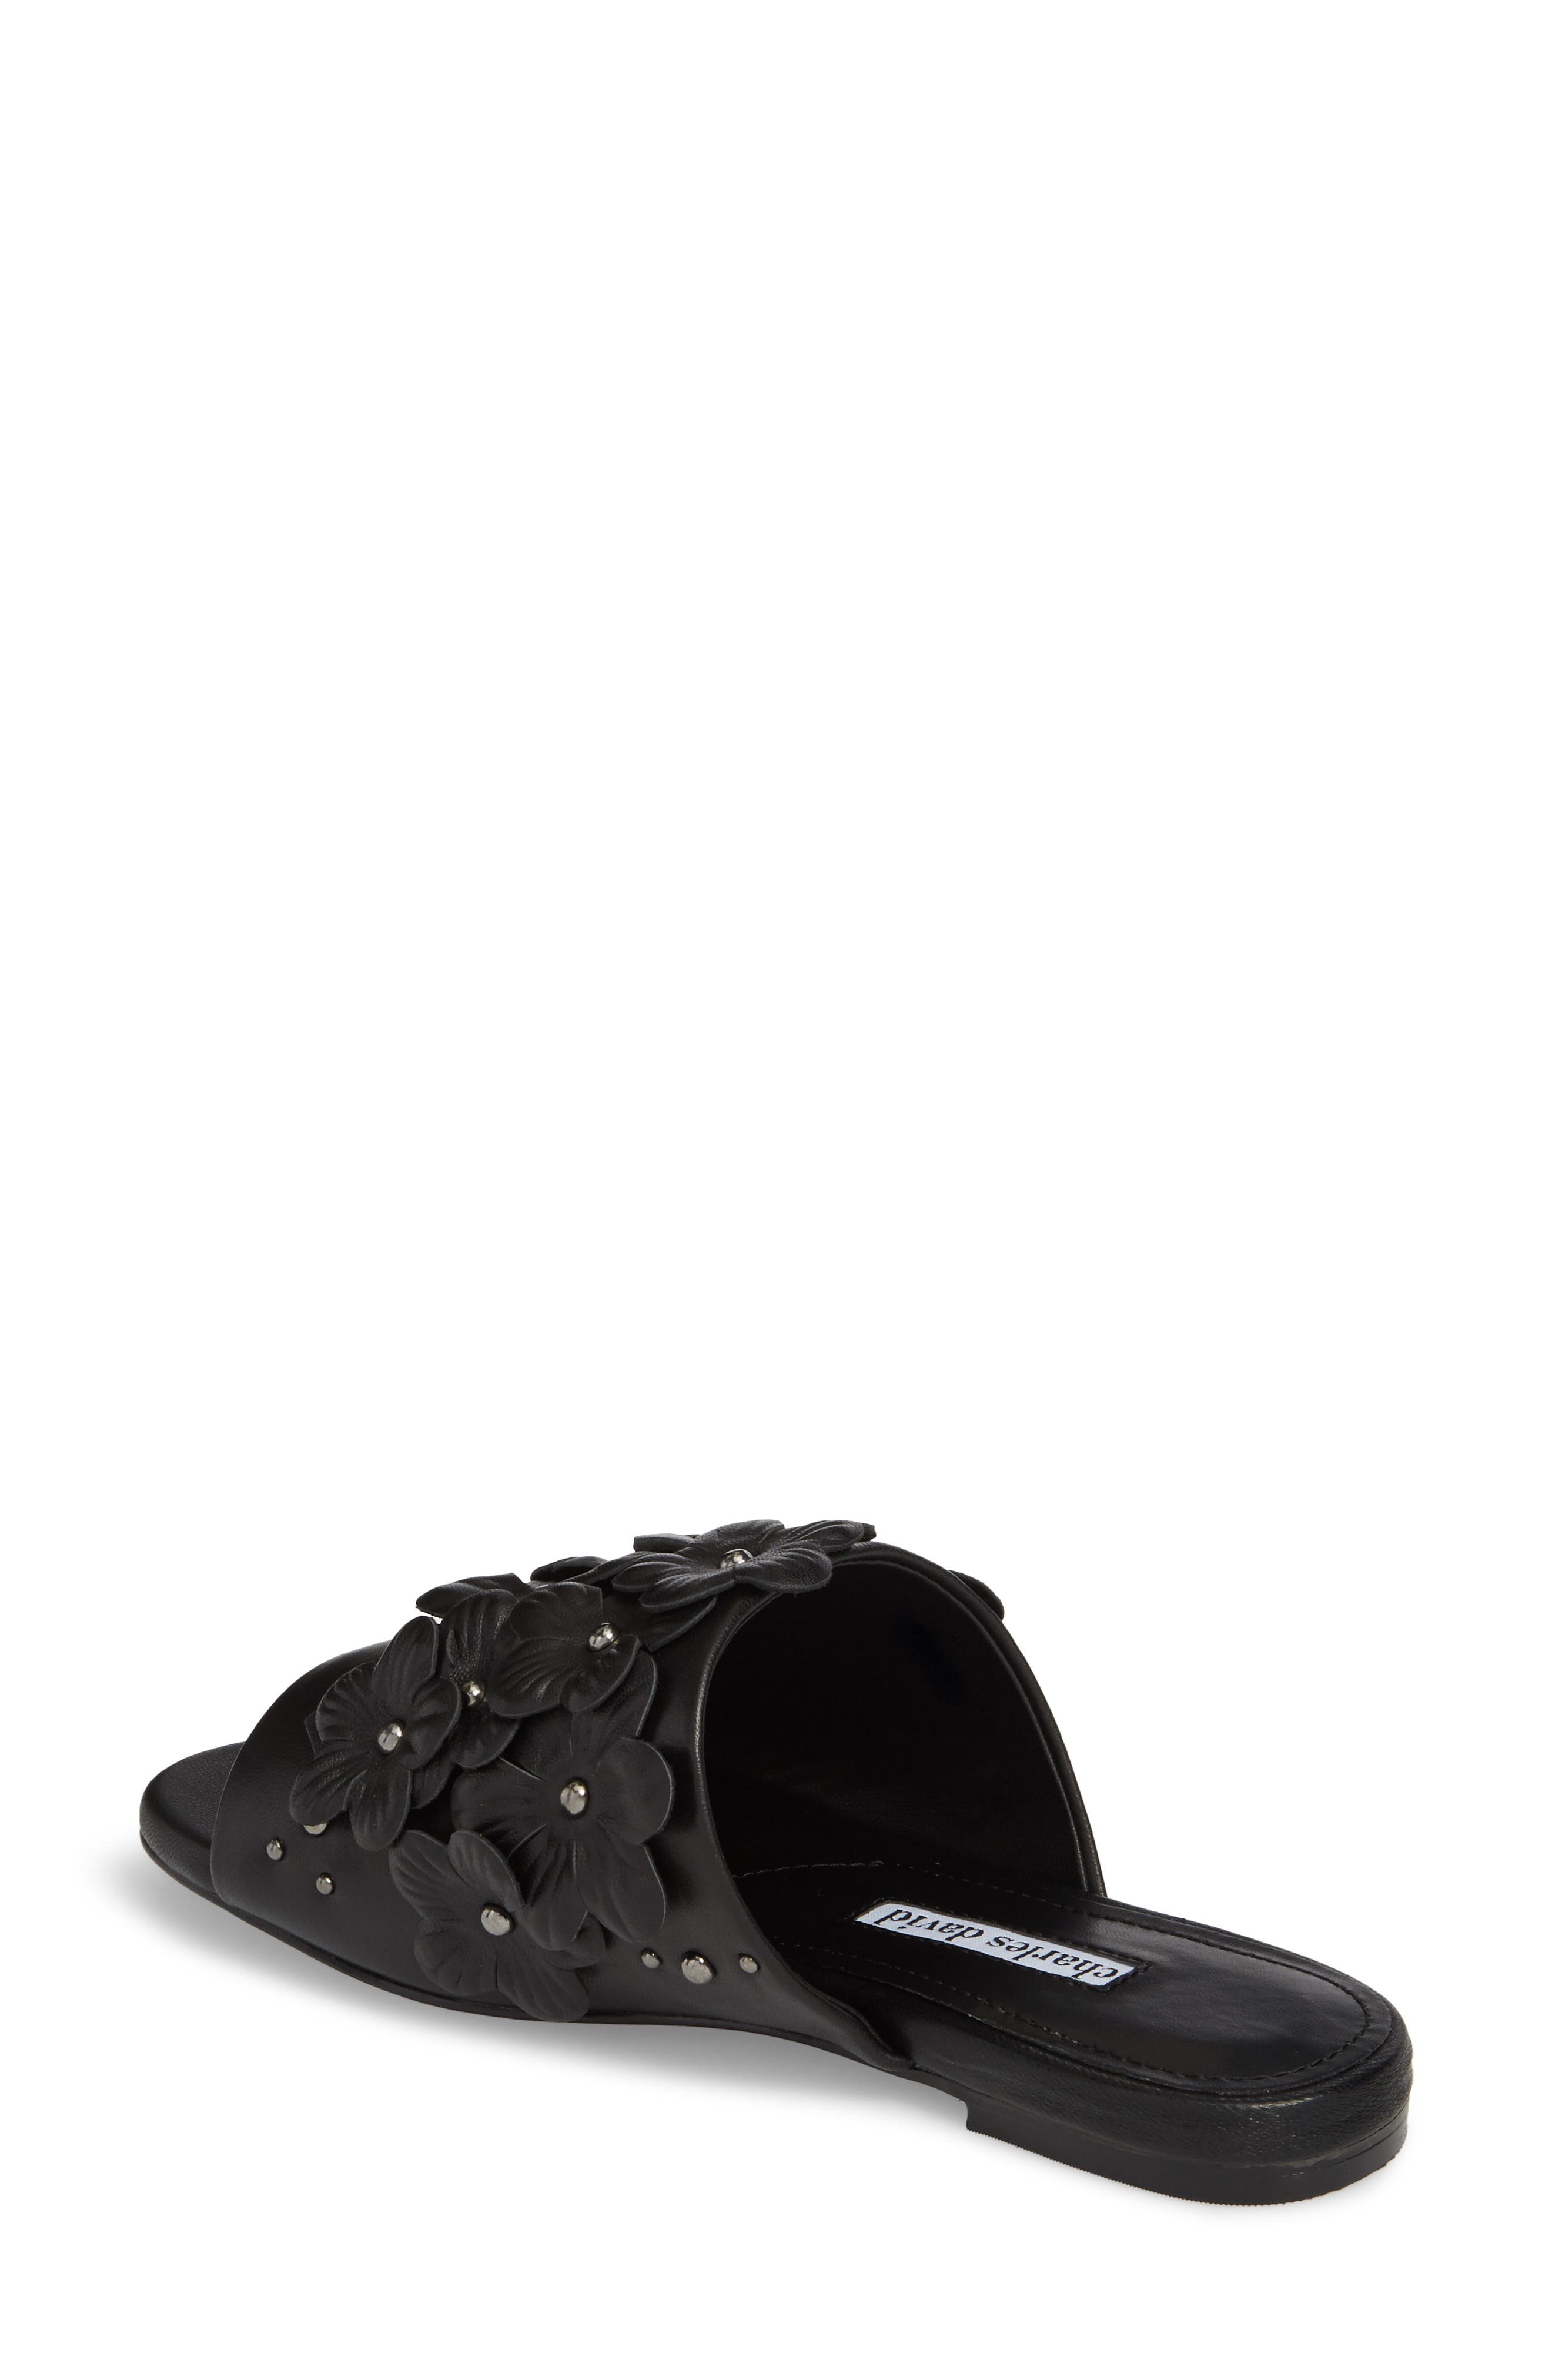 Sicilian Slide Sandal,                             Alternate thumbnail 2, color,                             BLACK LEATHER